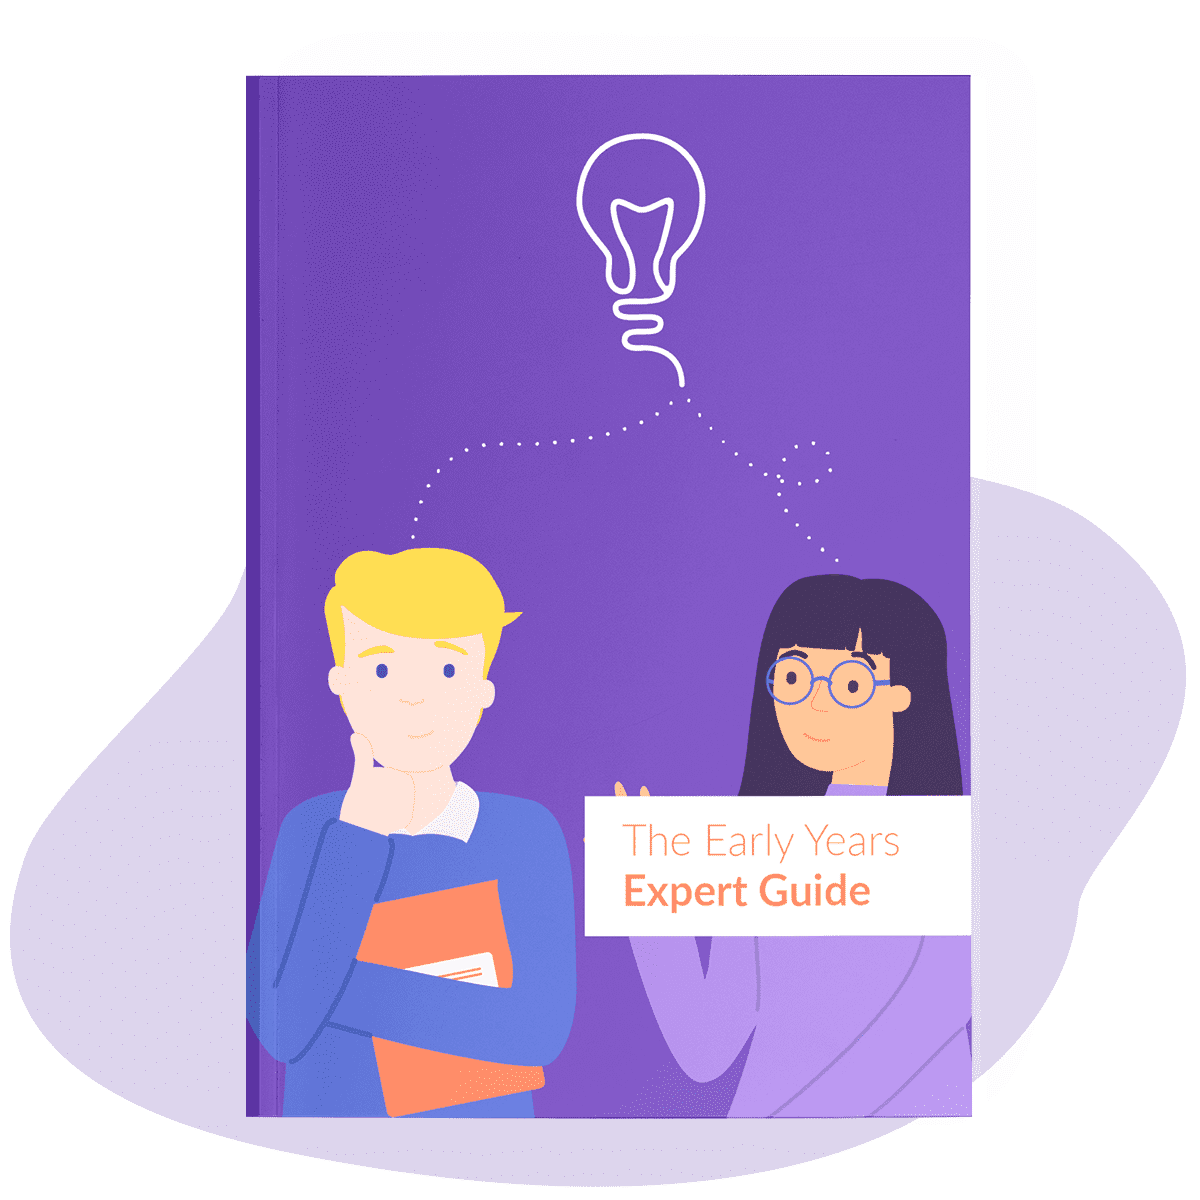 The Early Years Expert Guide